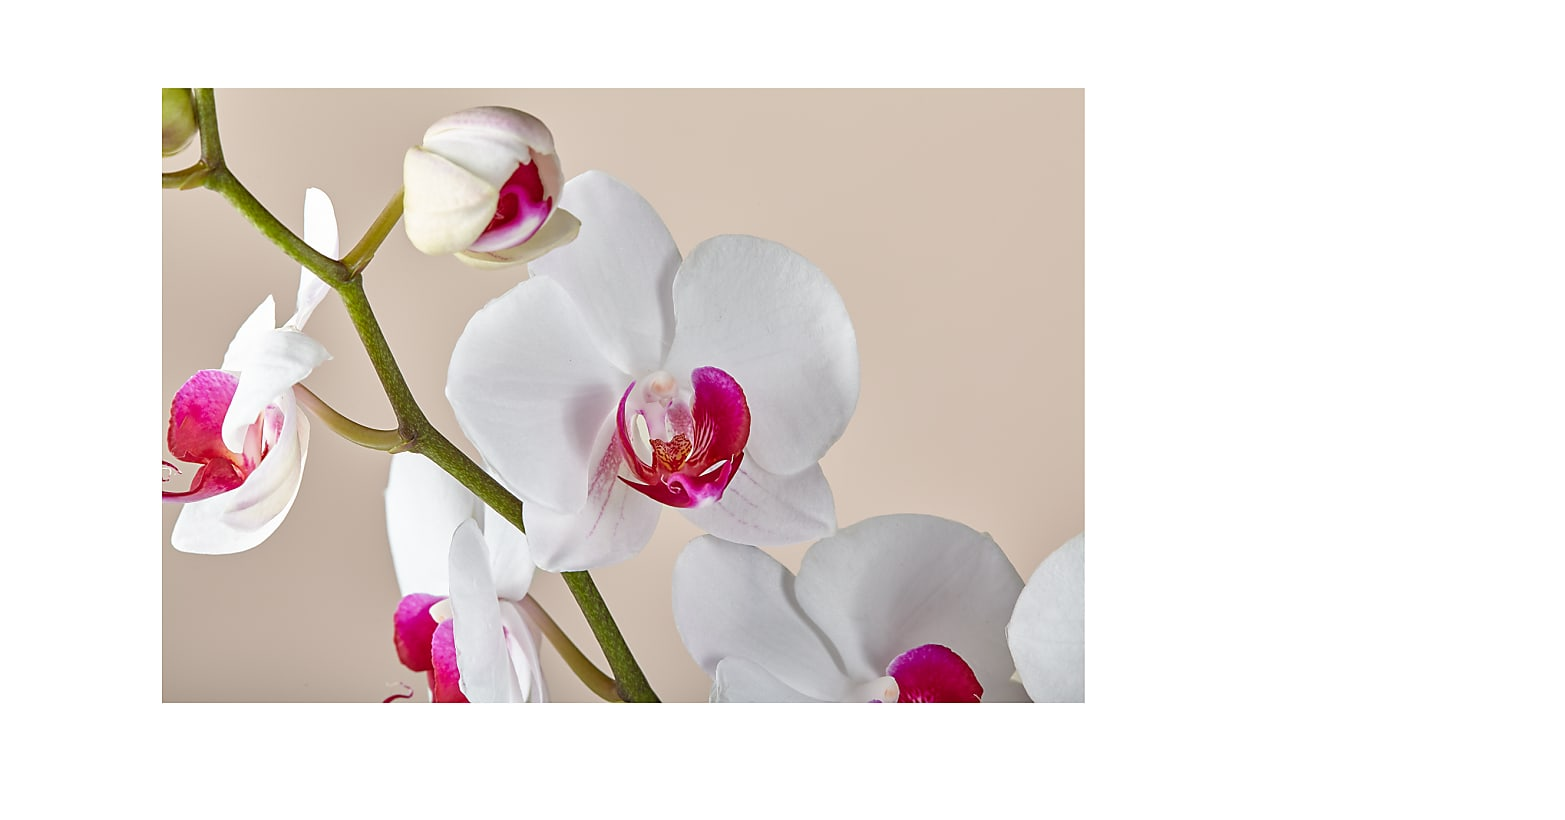 Romantique Pink Orchid - Image 2 Of 2